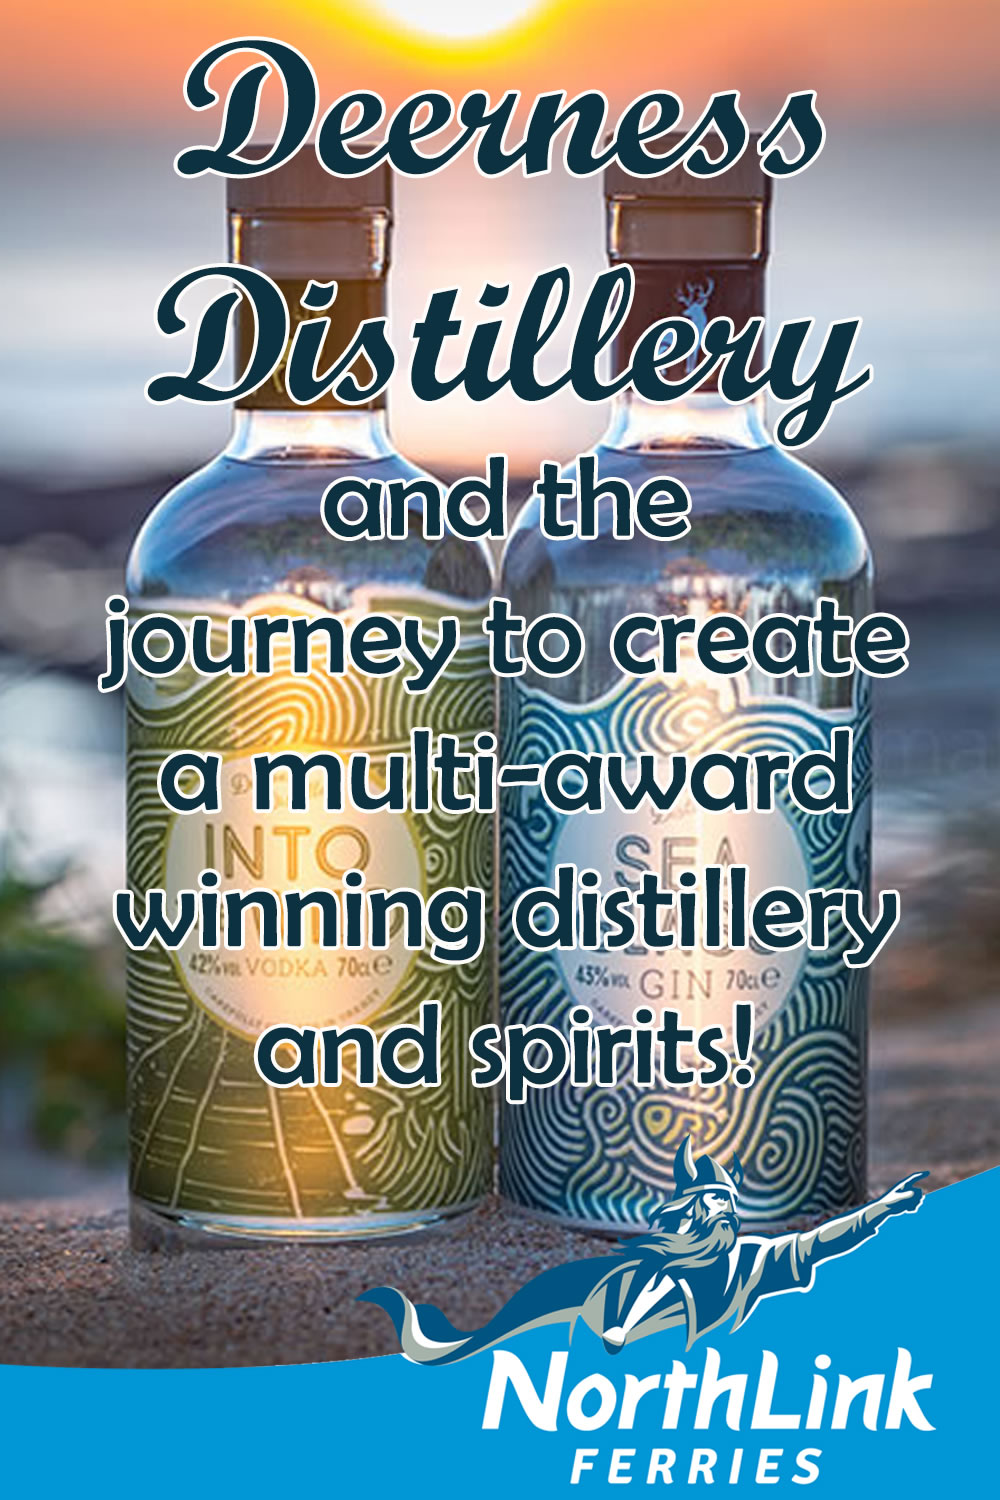 Deerness Distillery and the journey to create a multi-award winning distillery and spirits!